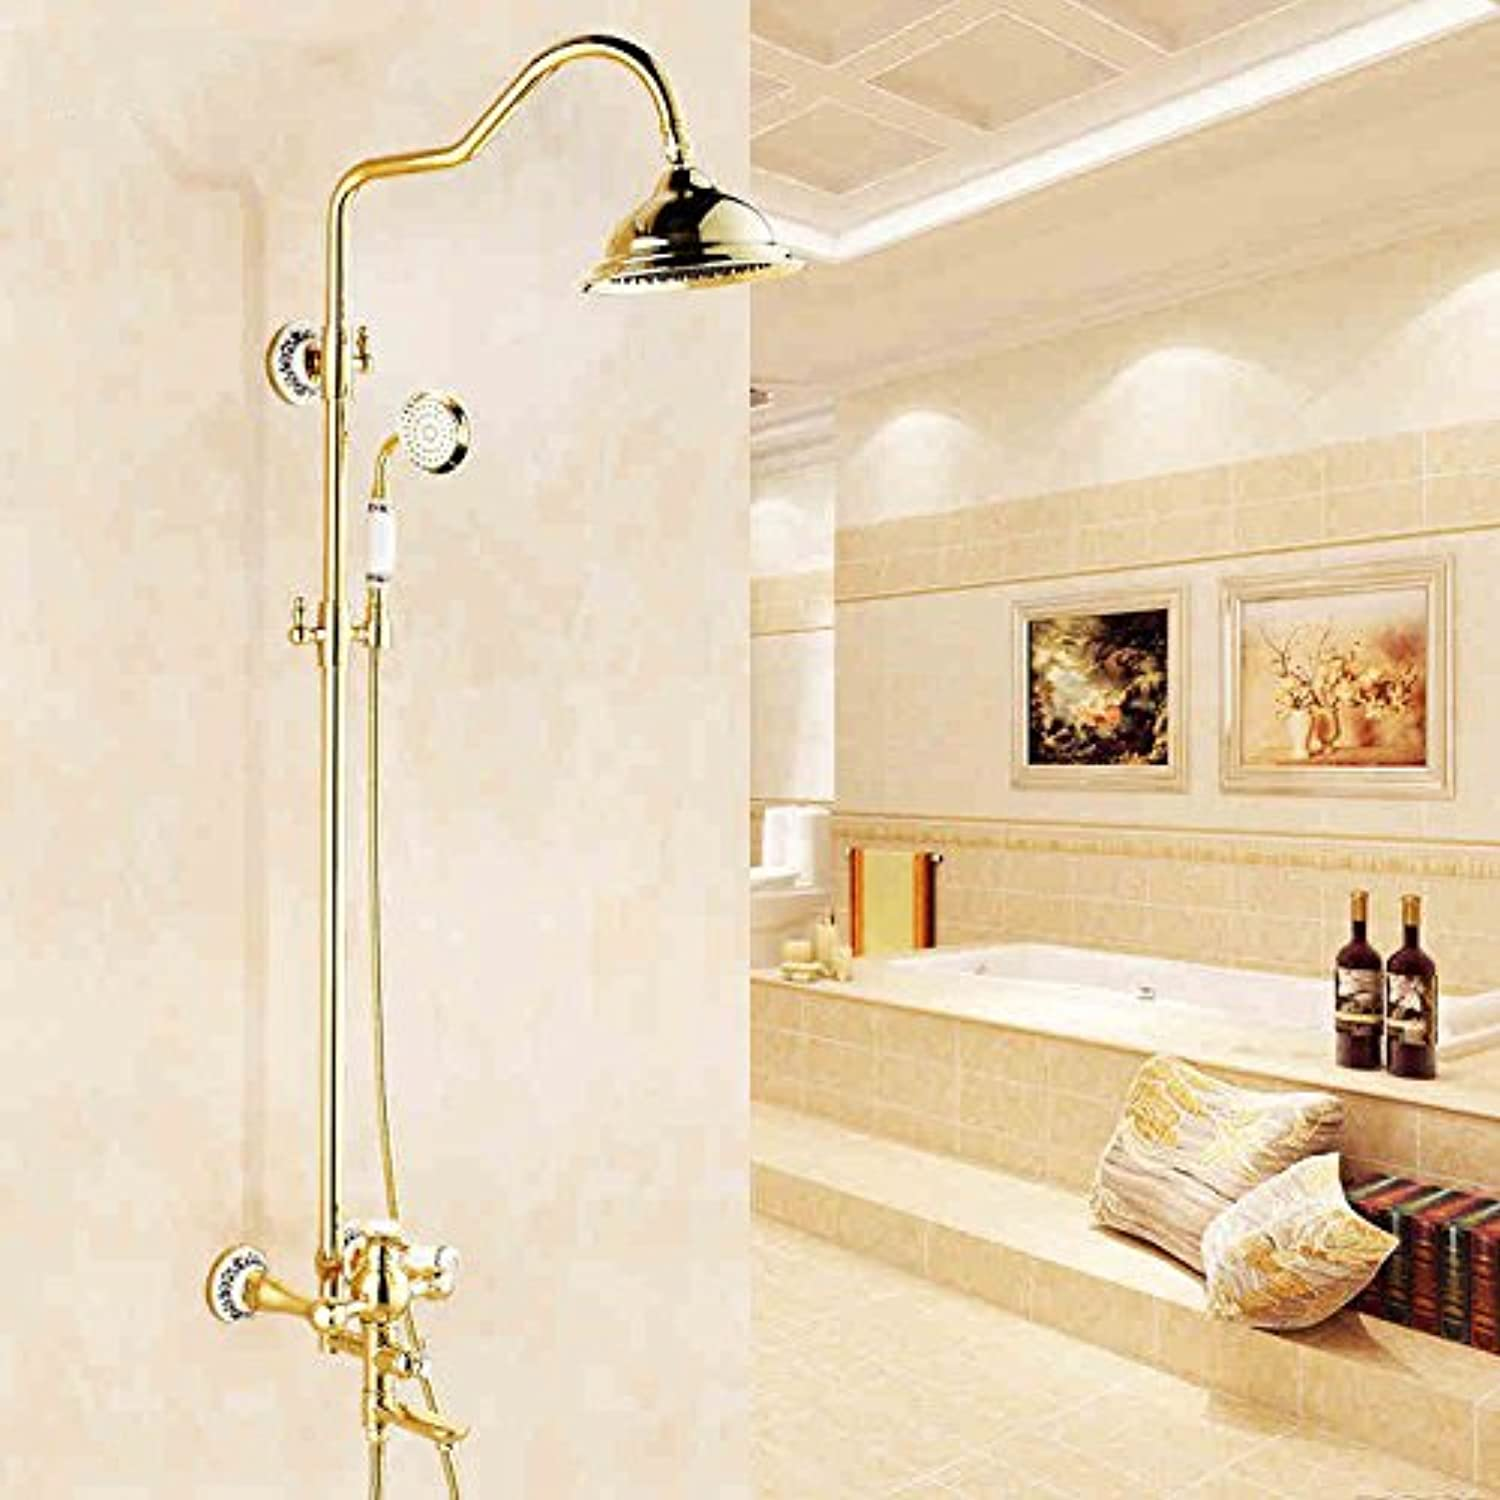 CFHJN HOME Mixer Water Tap copper European style Hot and cold Golden jade Gold plated Restroom Fixtures Commercial Bathroom Sink Taps